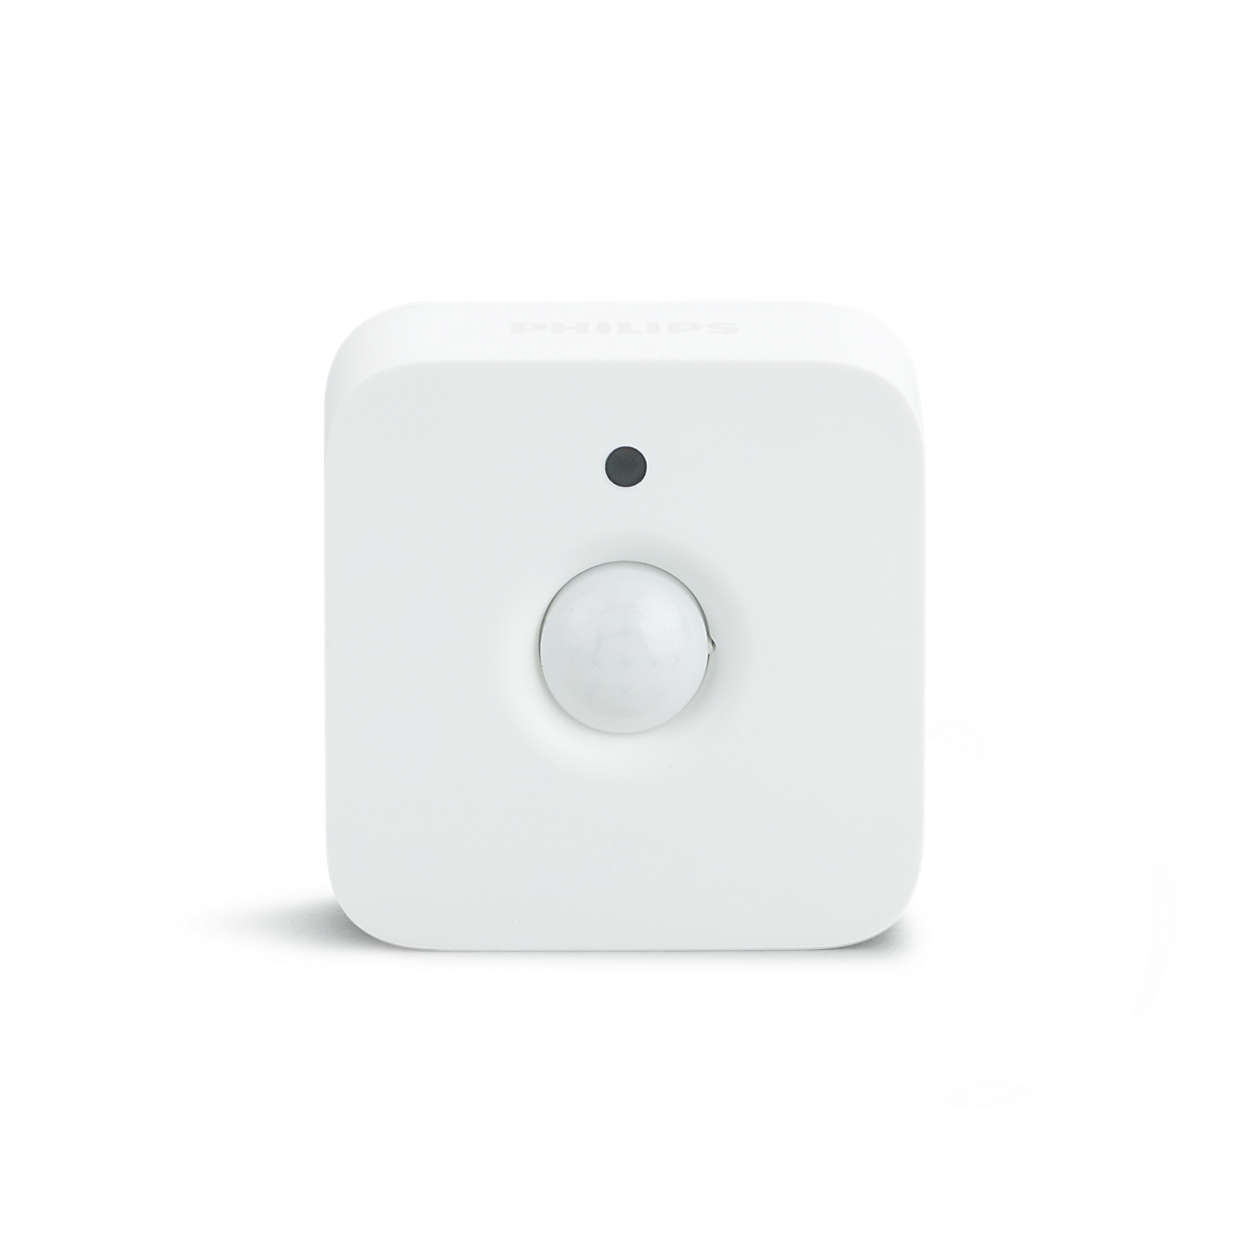 Automatically switches lights